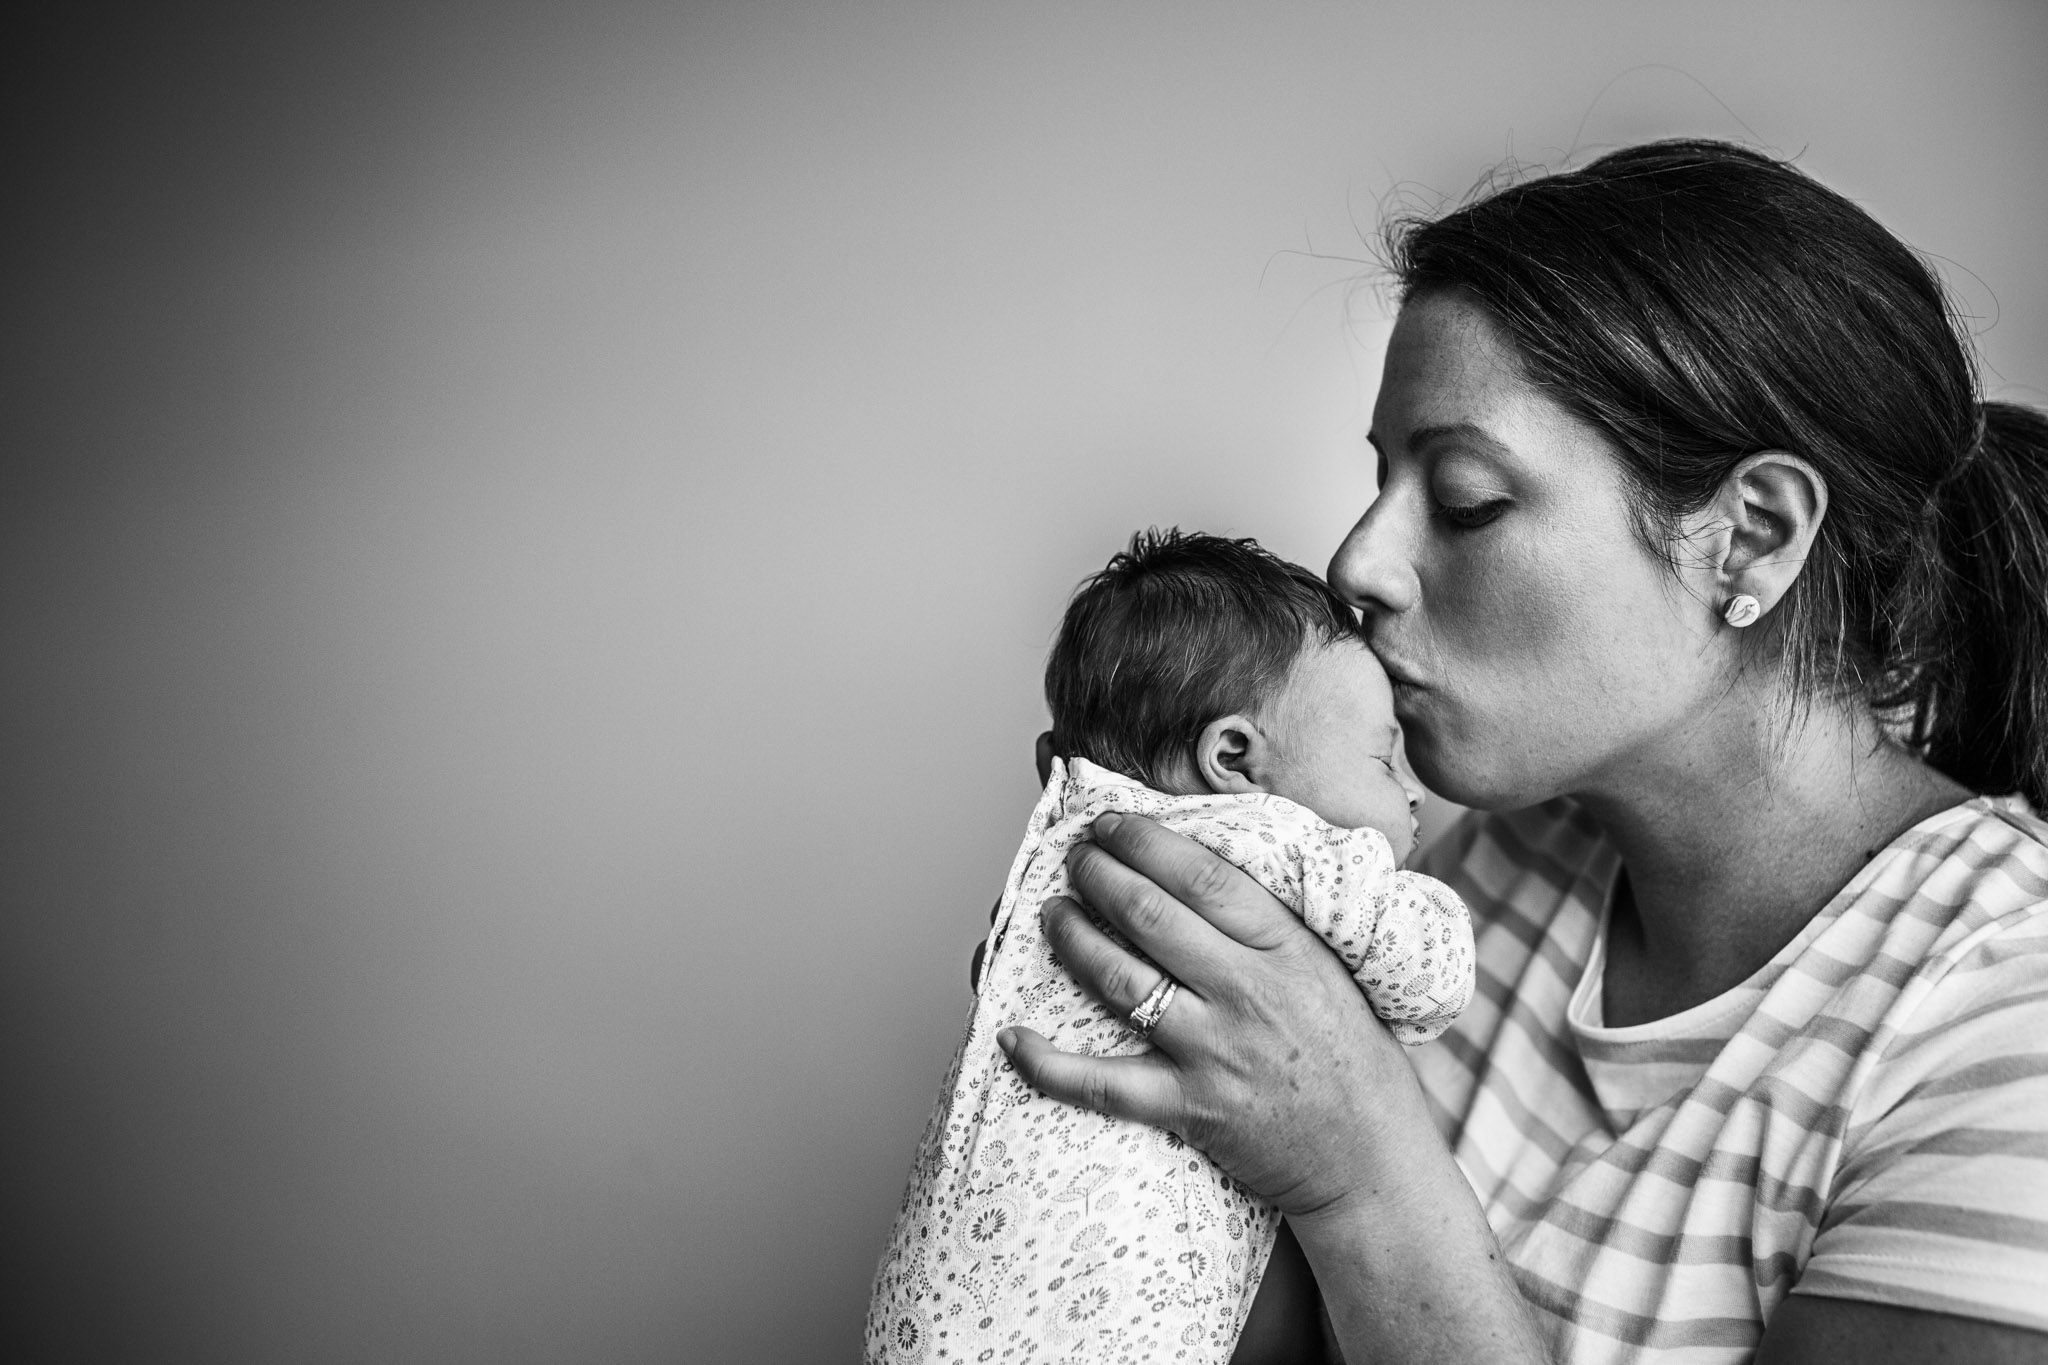 mother-kissing-newborn-daughter-on-the-head (1 of 1).jpg